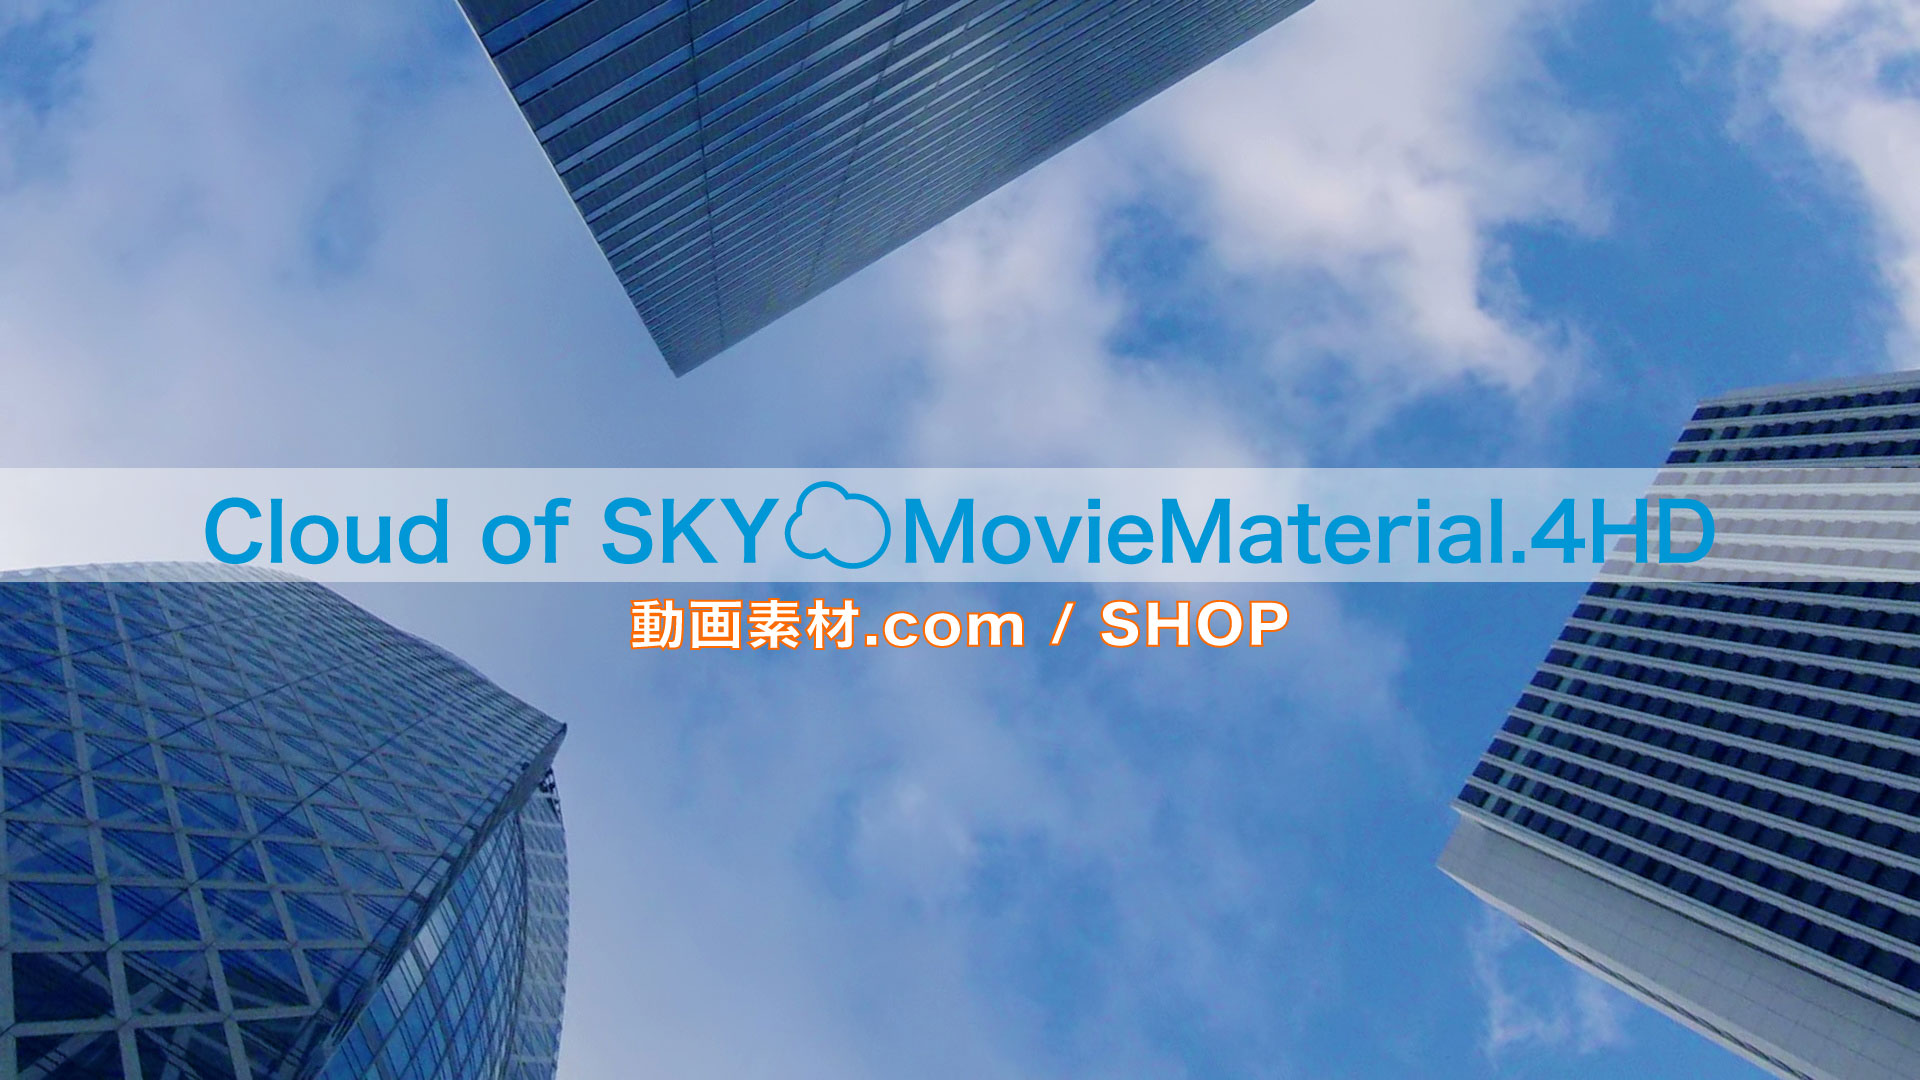 【Cloud of SKY MovieMaterial.4HD】空と雲(月)のフルハイビジョン1920×1080p動画素材集 image2